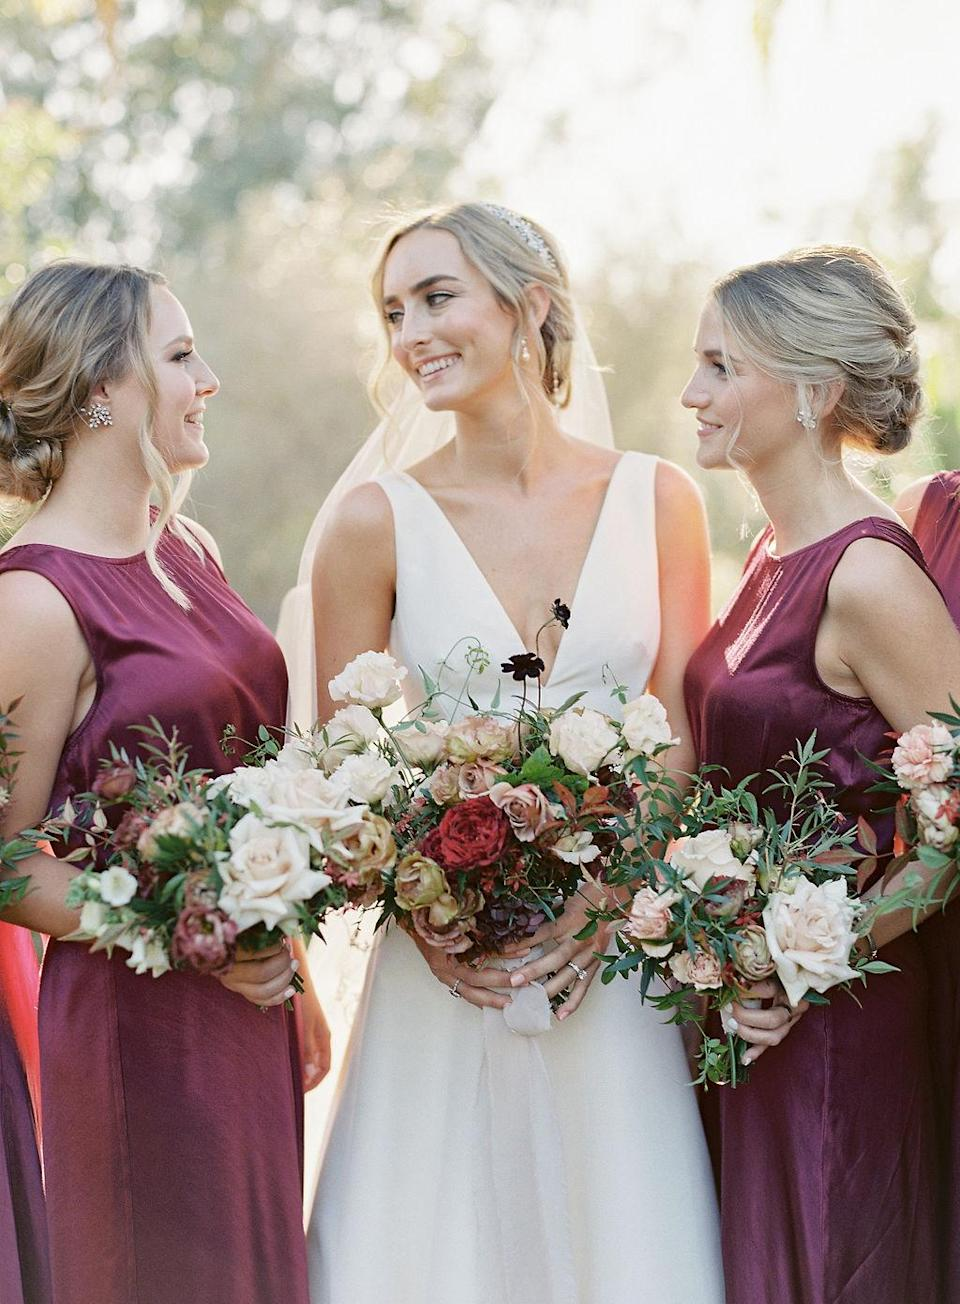 "<p>The bridesmaids wore <a href=""https://www.bhldn.com/"" rel=""nofollow noopener"" target=""_blank"" data-ylk=""slk:BHLDN"" class=""link rapid-noclick-resp"">BHLDN</a> dresses in a deep wine color. ""I wanted something classic yet still chic, an investment dress that you would see any wedding guest in potentially,"" Campbell says. ""The beautiful silk drape gave the dress old Hollywood vibes and it felt very timeless to me."" The ceremony readers and attendants wore the same boat neck dress in a champagne tone.</p> <p>Campbell held an unstructured bouquet—by florist <a href=""https://plentyofpetals.com/"" rel=""nofollow noopener"" target=""_blank"" data-ylk=""slk:Plenty of Petals"" class=""link rapid-noclick-resp"">Plenty of Petals</a>—with greenery, garden blooms, and textured foliage in tones of mauve, burgundy, and ivory. The florals included four types of roses, dahlias, hellebores, lisianthus, hydrangea, and jasmine vines; the arrangement was tied with a soft ivory silk chiffon ribbon.</p>"